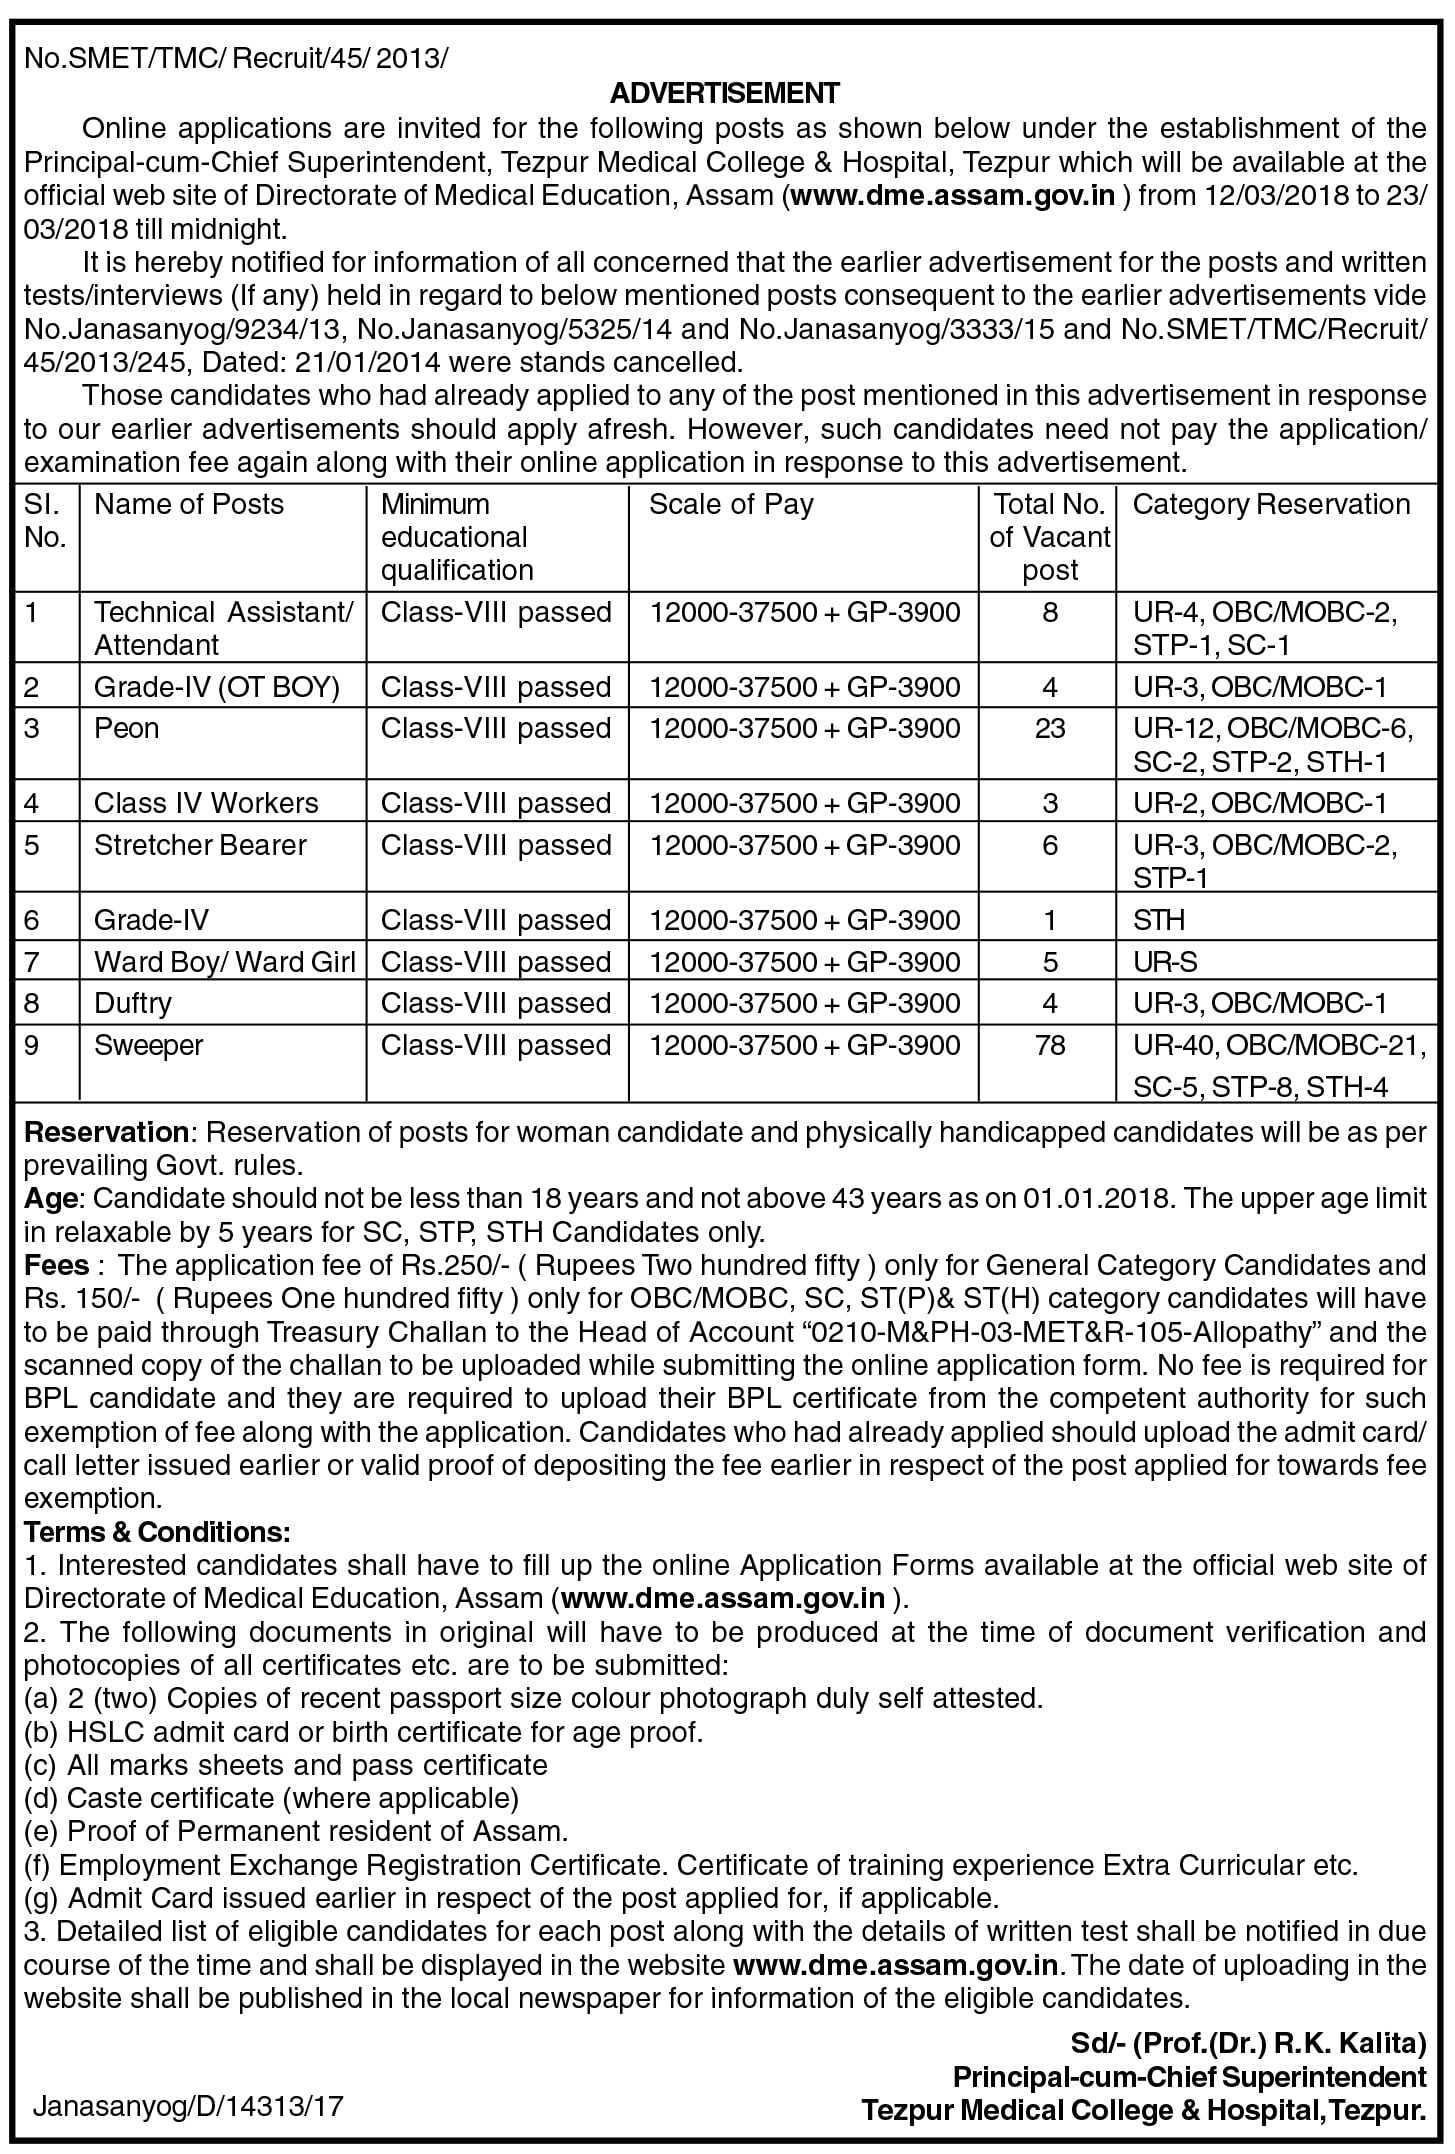 Tezpur Medical College Technical Assistant, Peon Recruitment